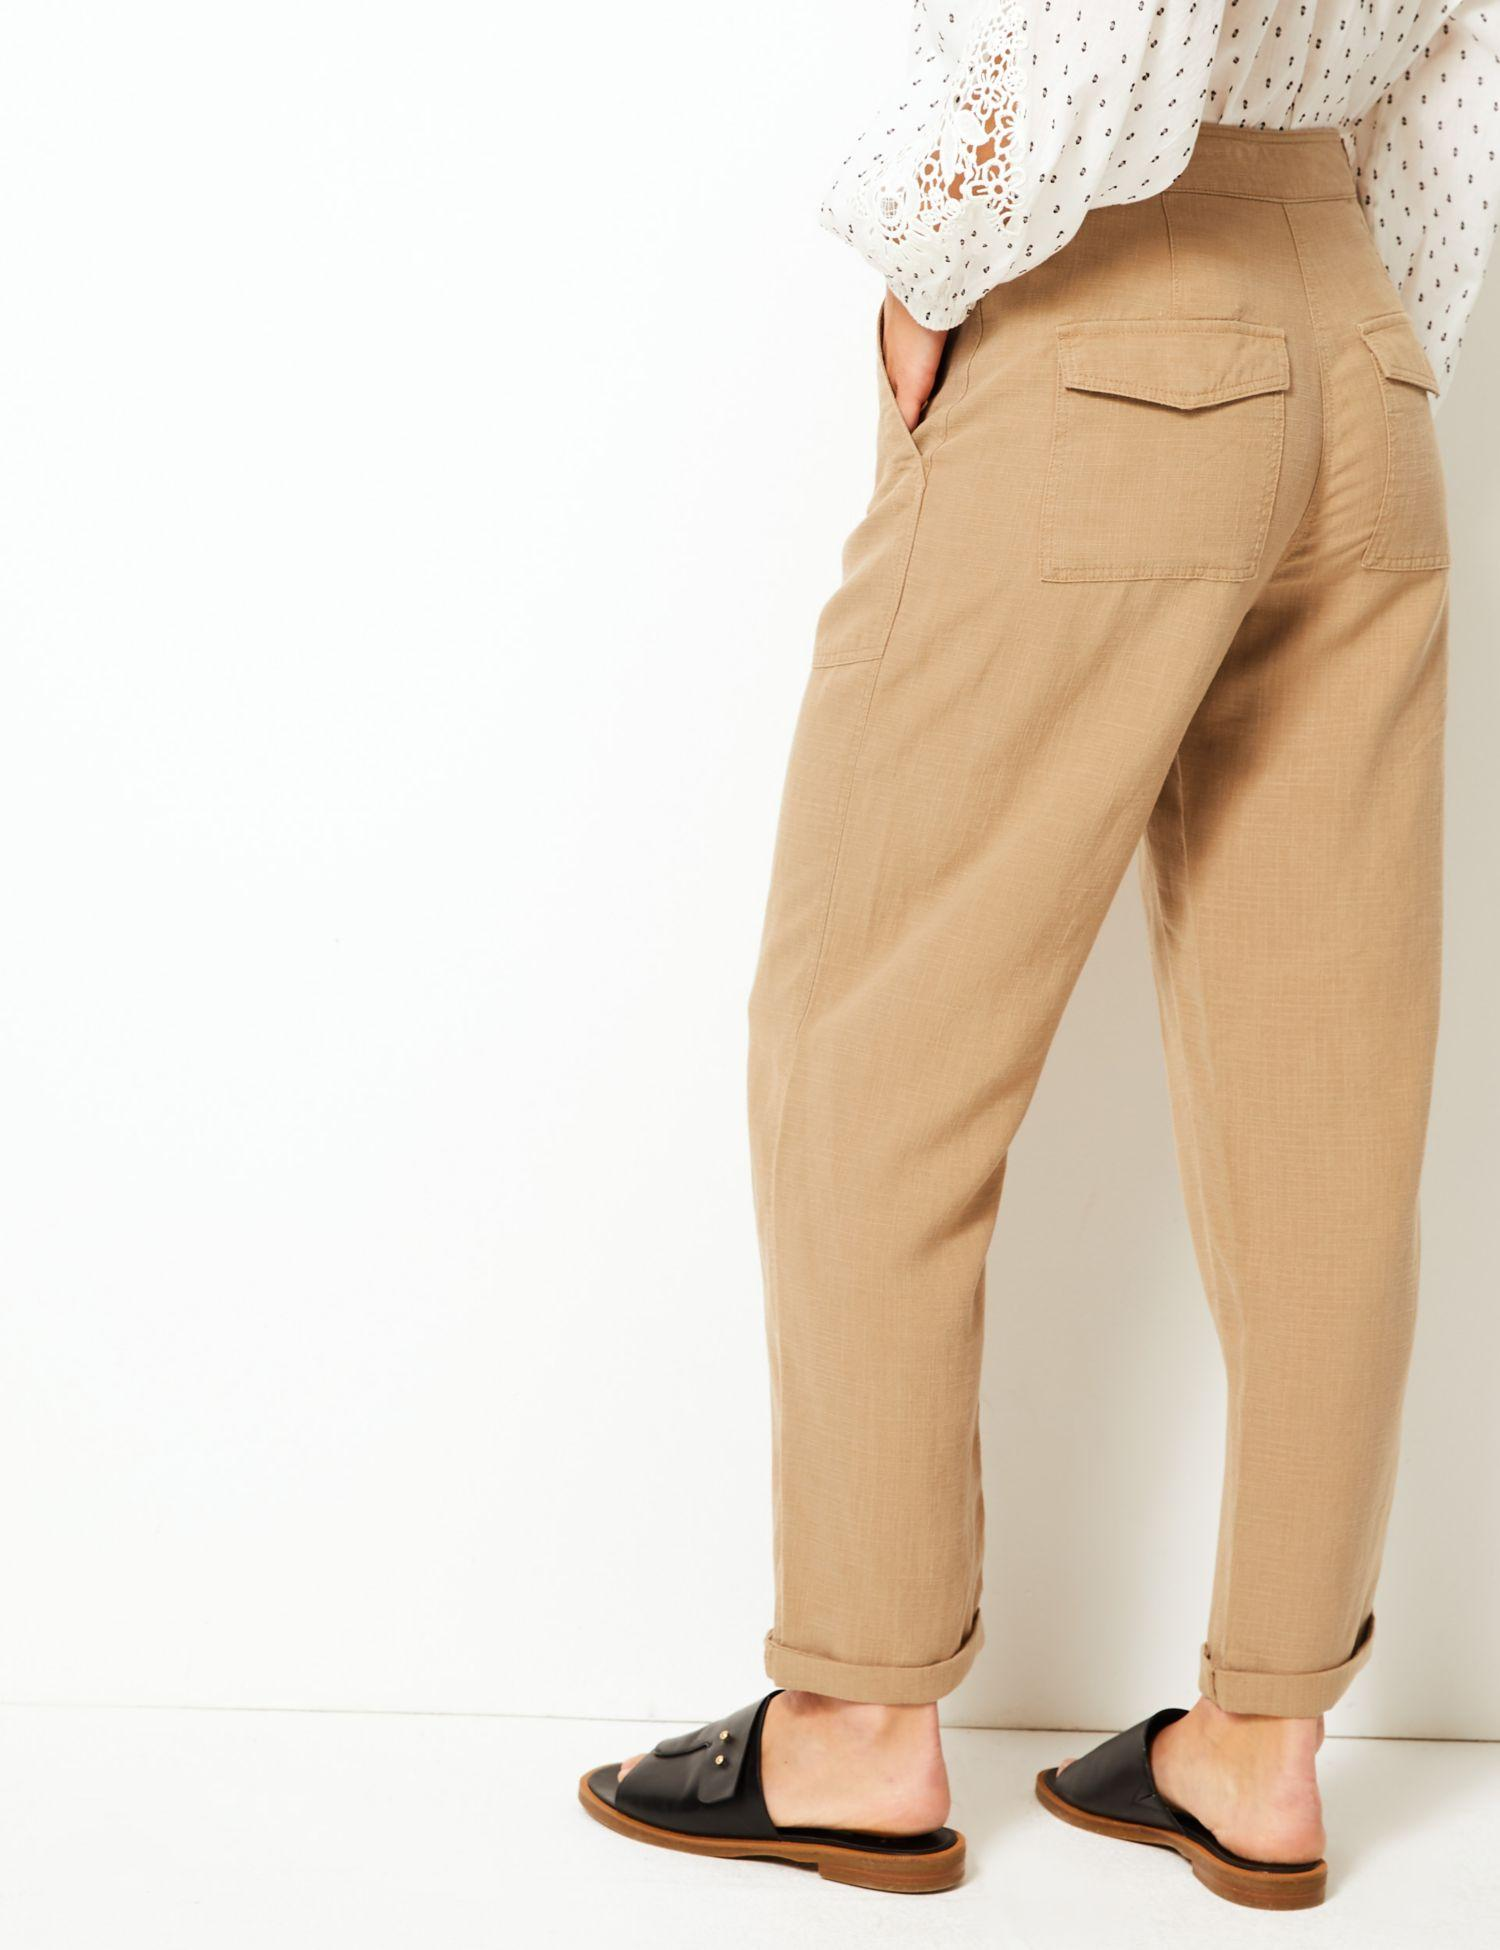 a652edc745 Marks   Spencer Linen Blend Ankle Grazer Peg Trousers in Natural - Lyst